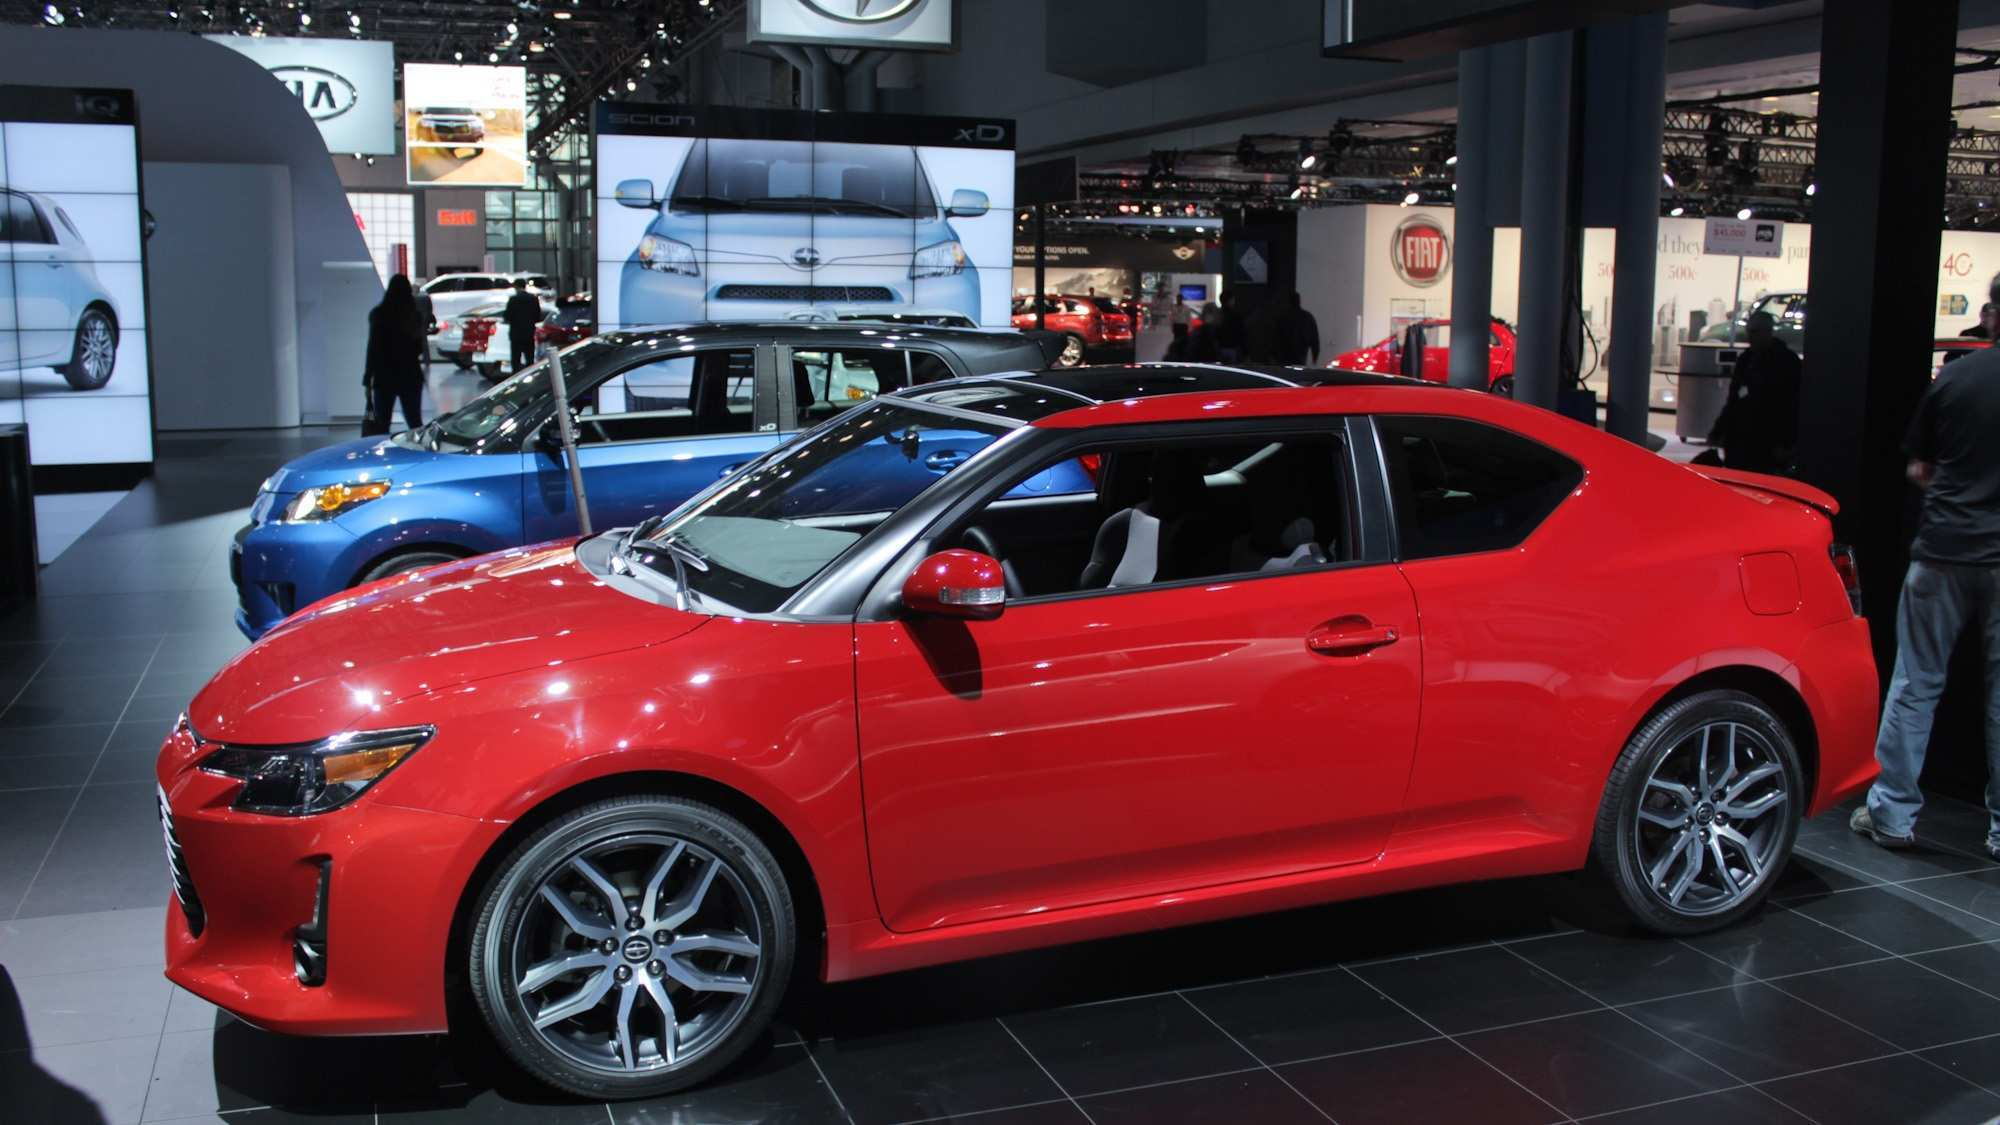 61 New 2020 Scion Tced Price Design And Review